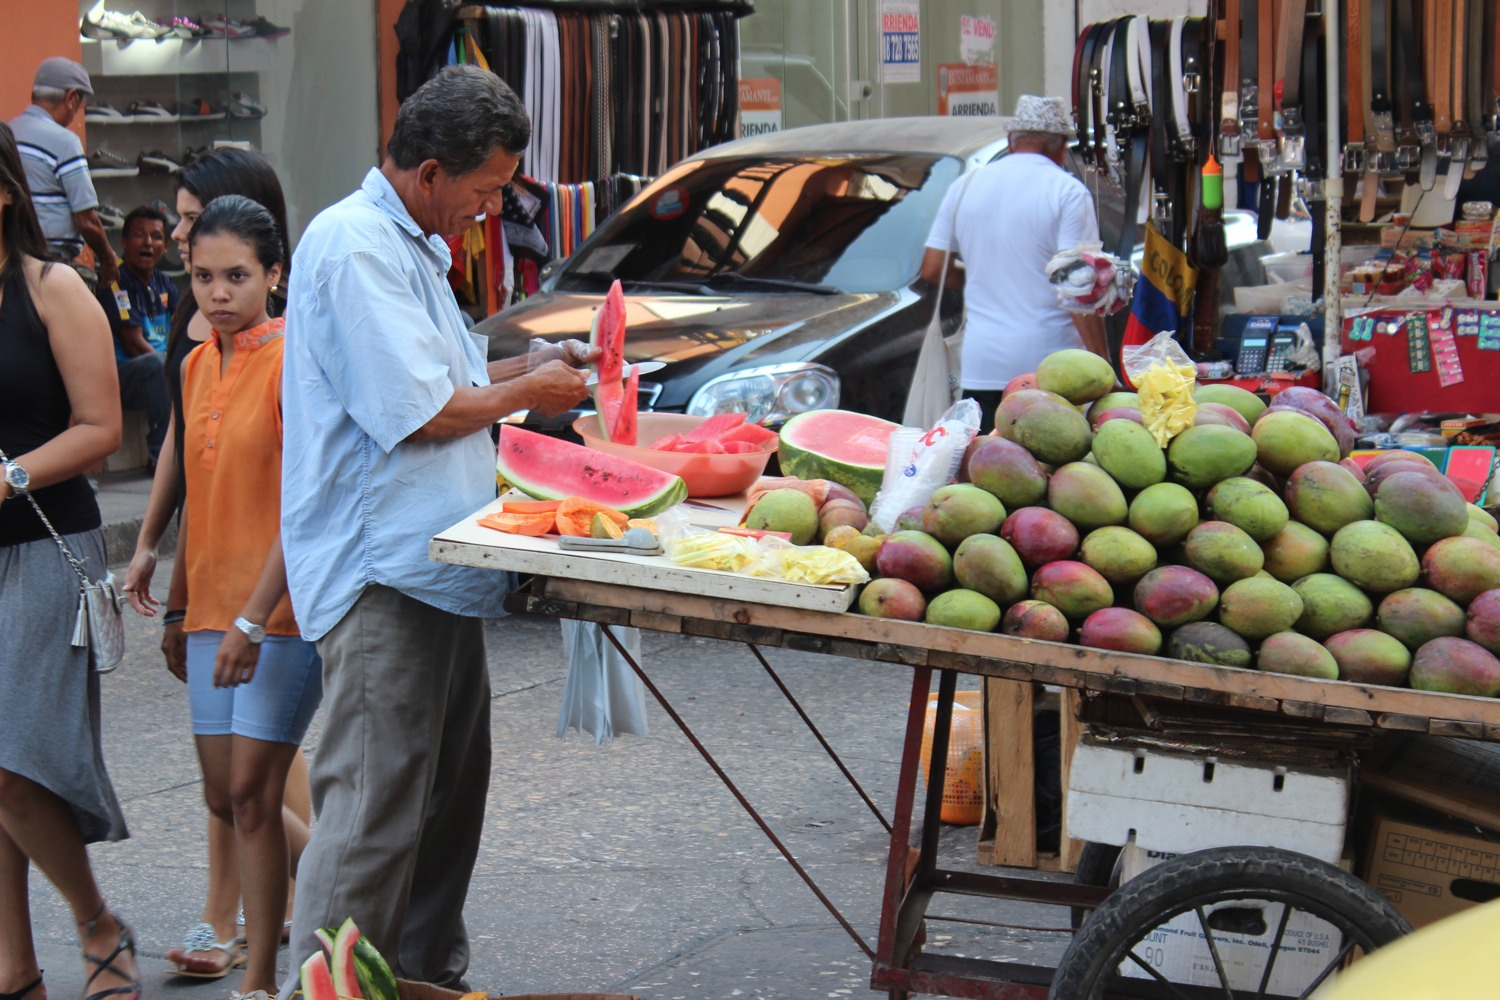 Fruit carts in Cartagena Colombia